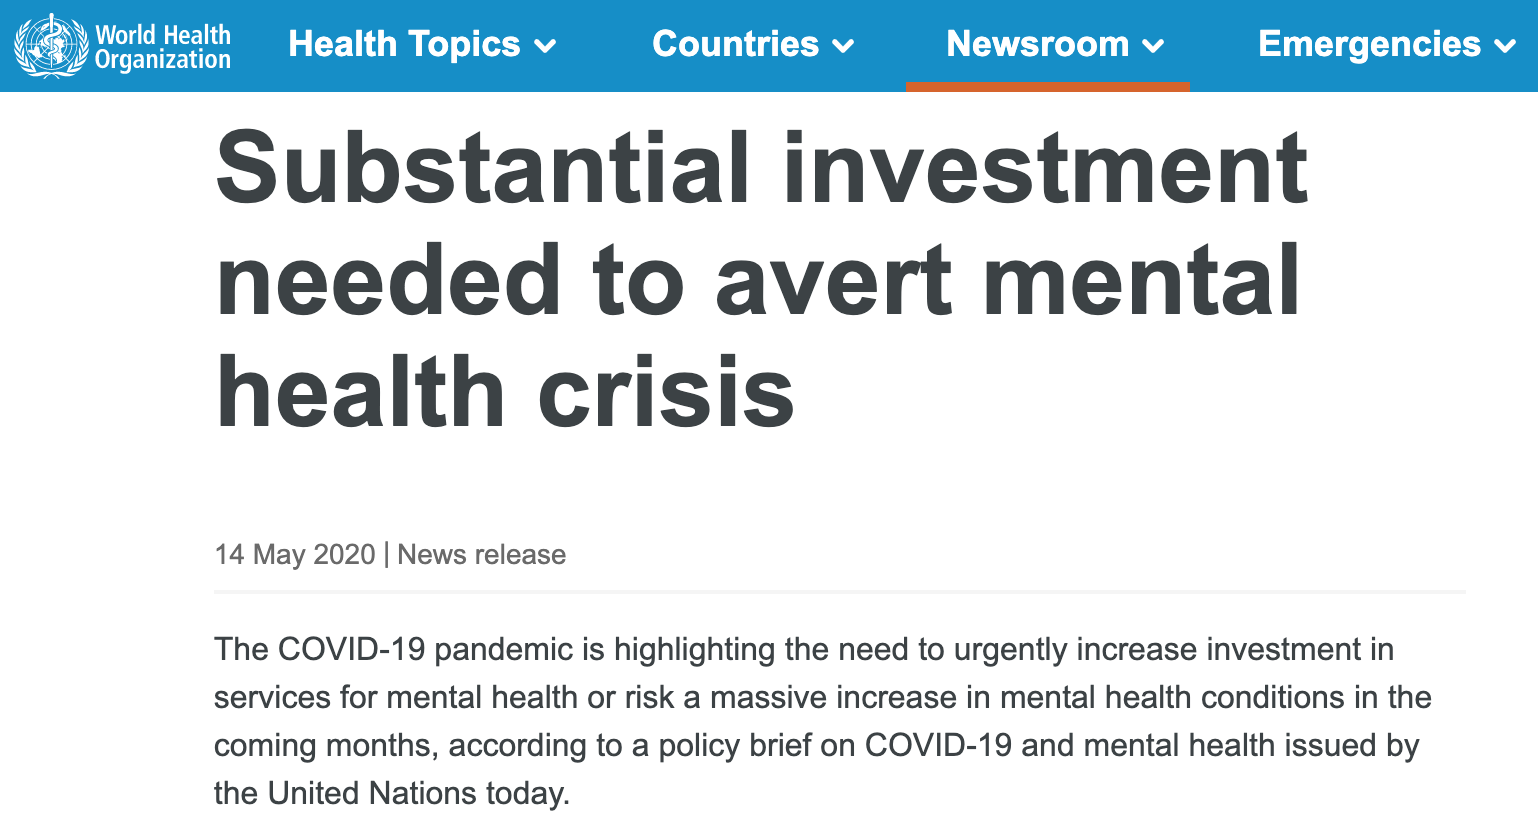 News release by the WHO - Social investment needed to avert mental health crisis